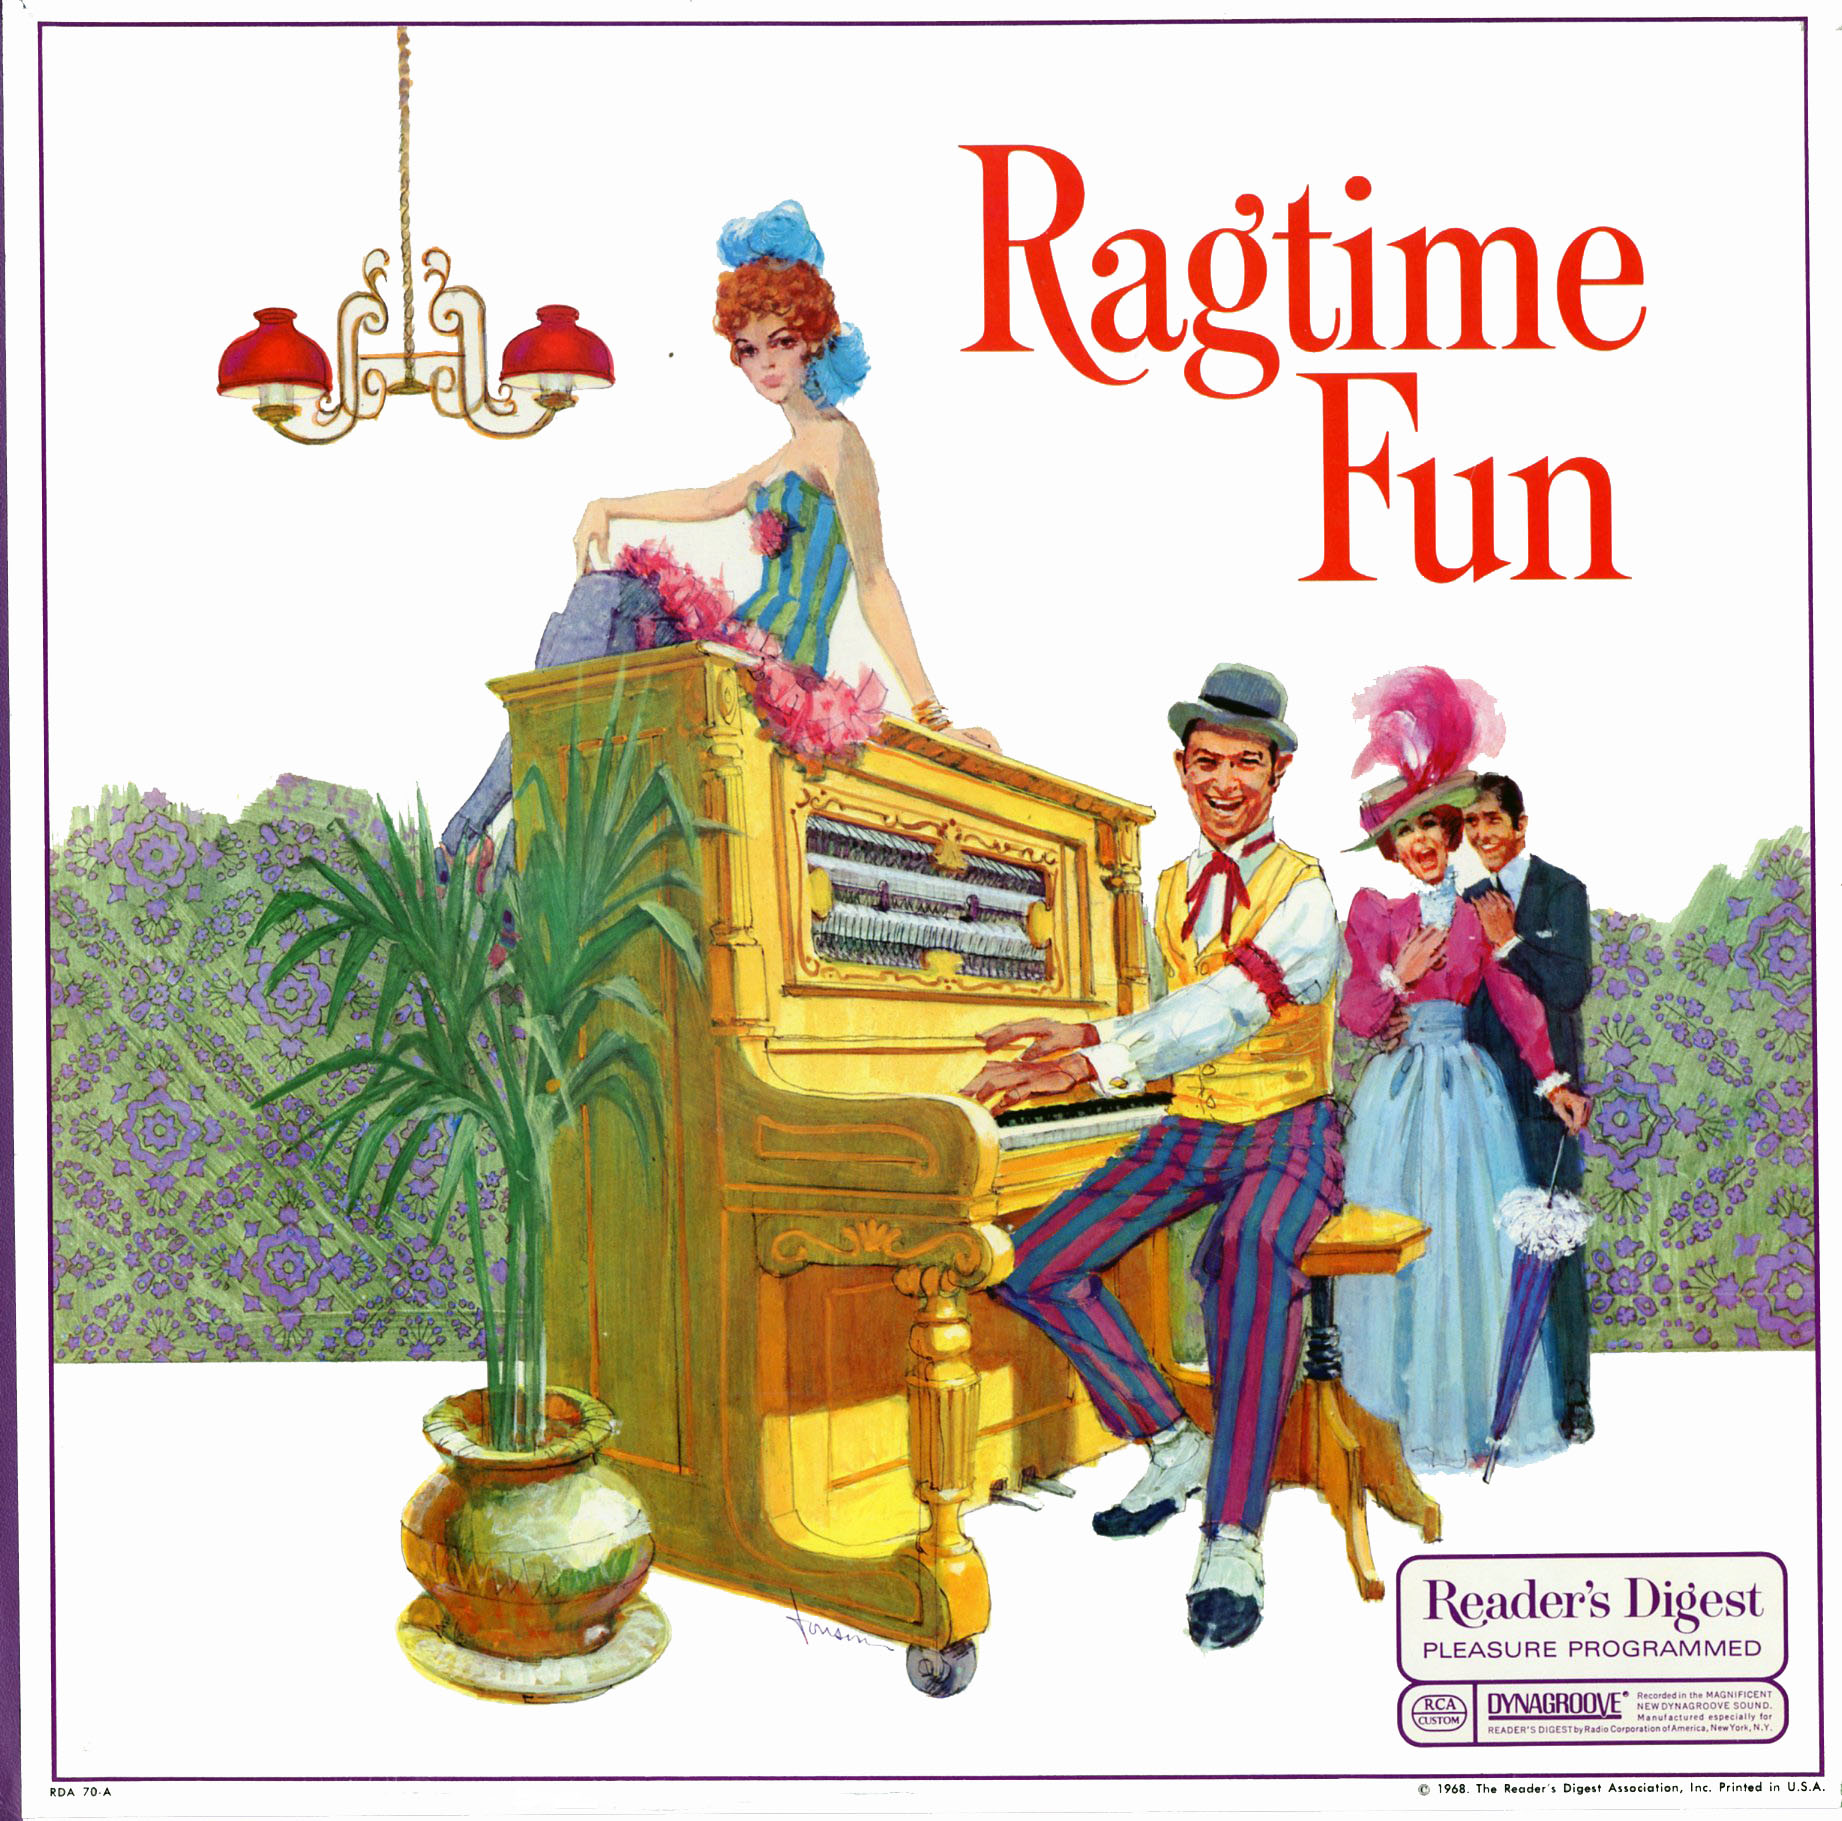 RDA70 - Ragtime Fun on CD